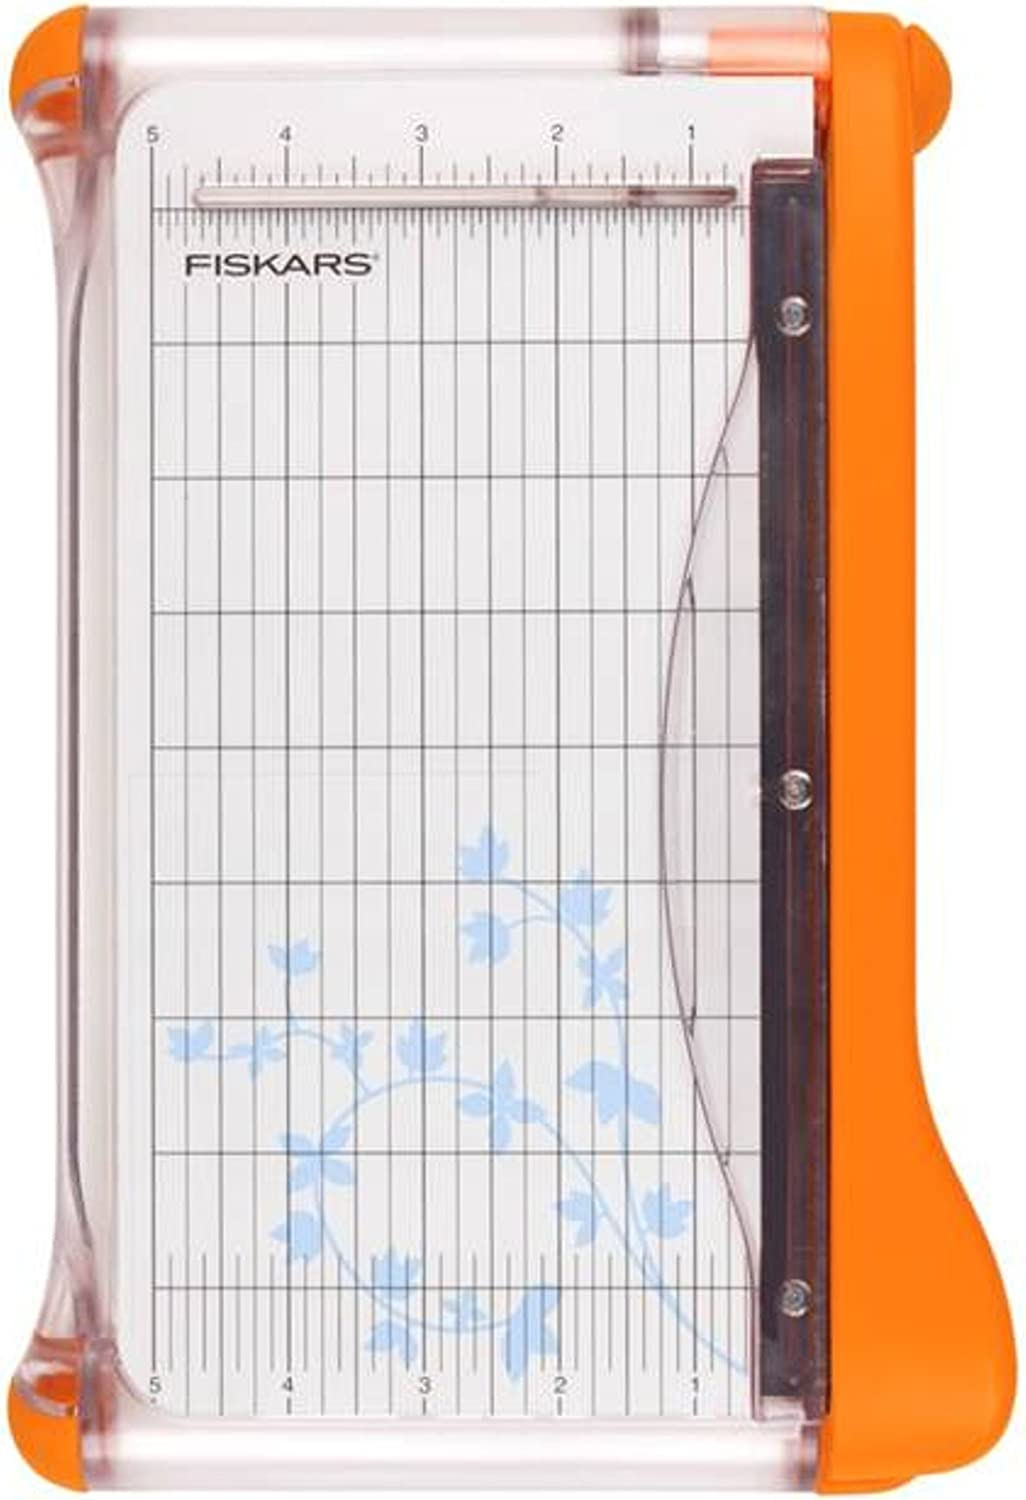 Fiskars 9 Inch Bypass Paper Trimmer (199130-1001), White : Rotary Paper Trimmers : Arts, Crafts & Sewing